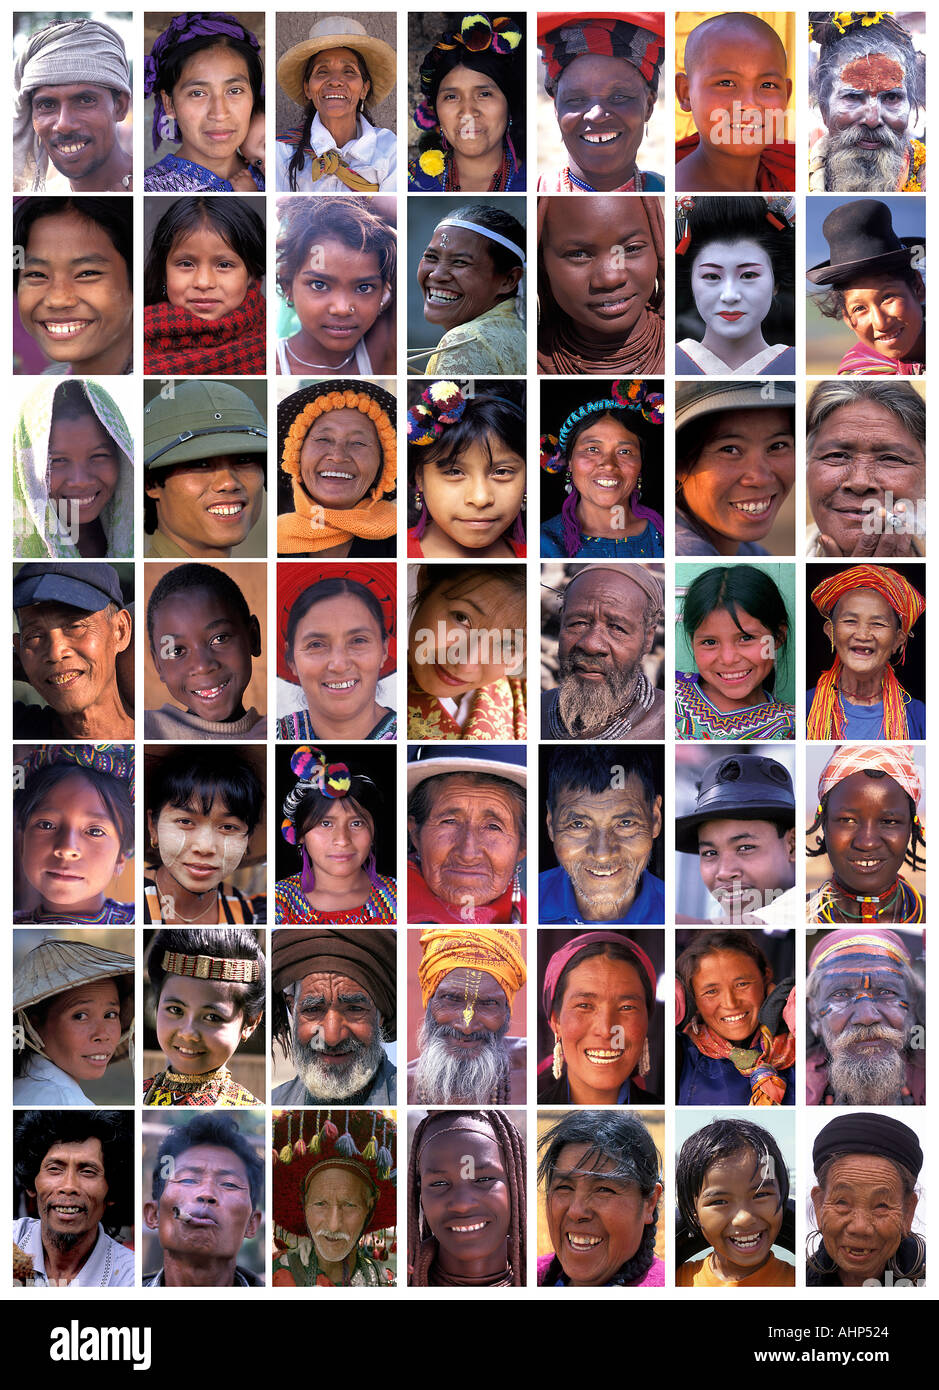 Collage of portraits Faces from around the world Asia Latin America and Africa Large format image - Stock Image